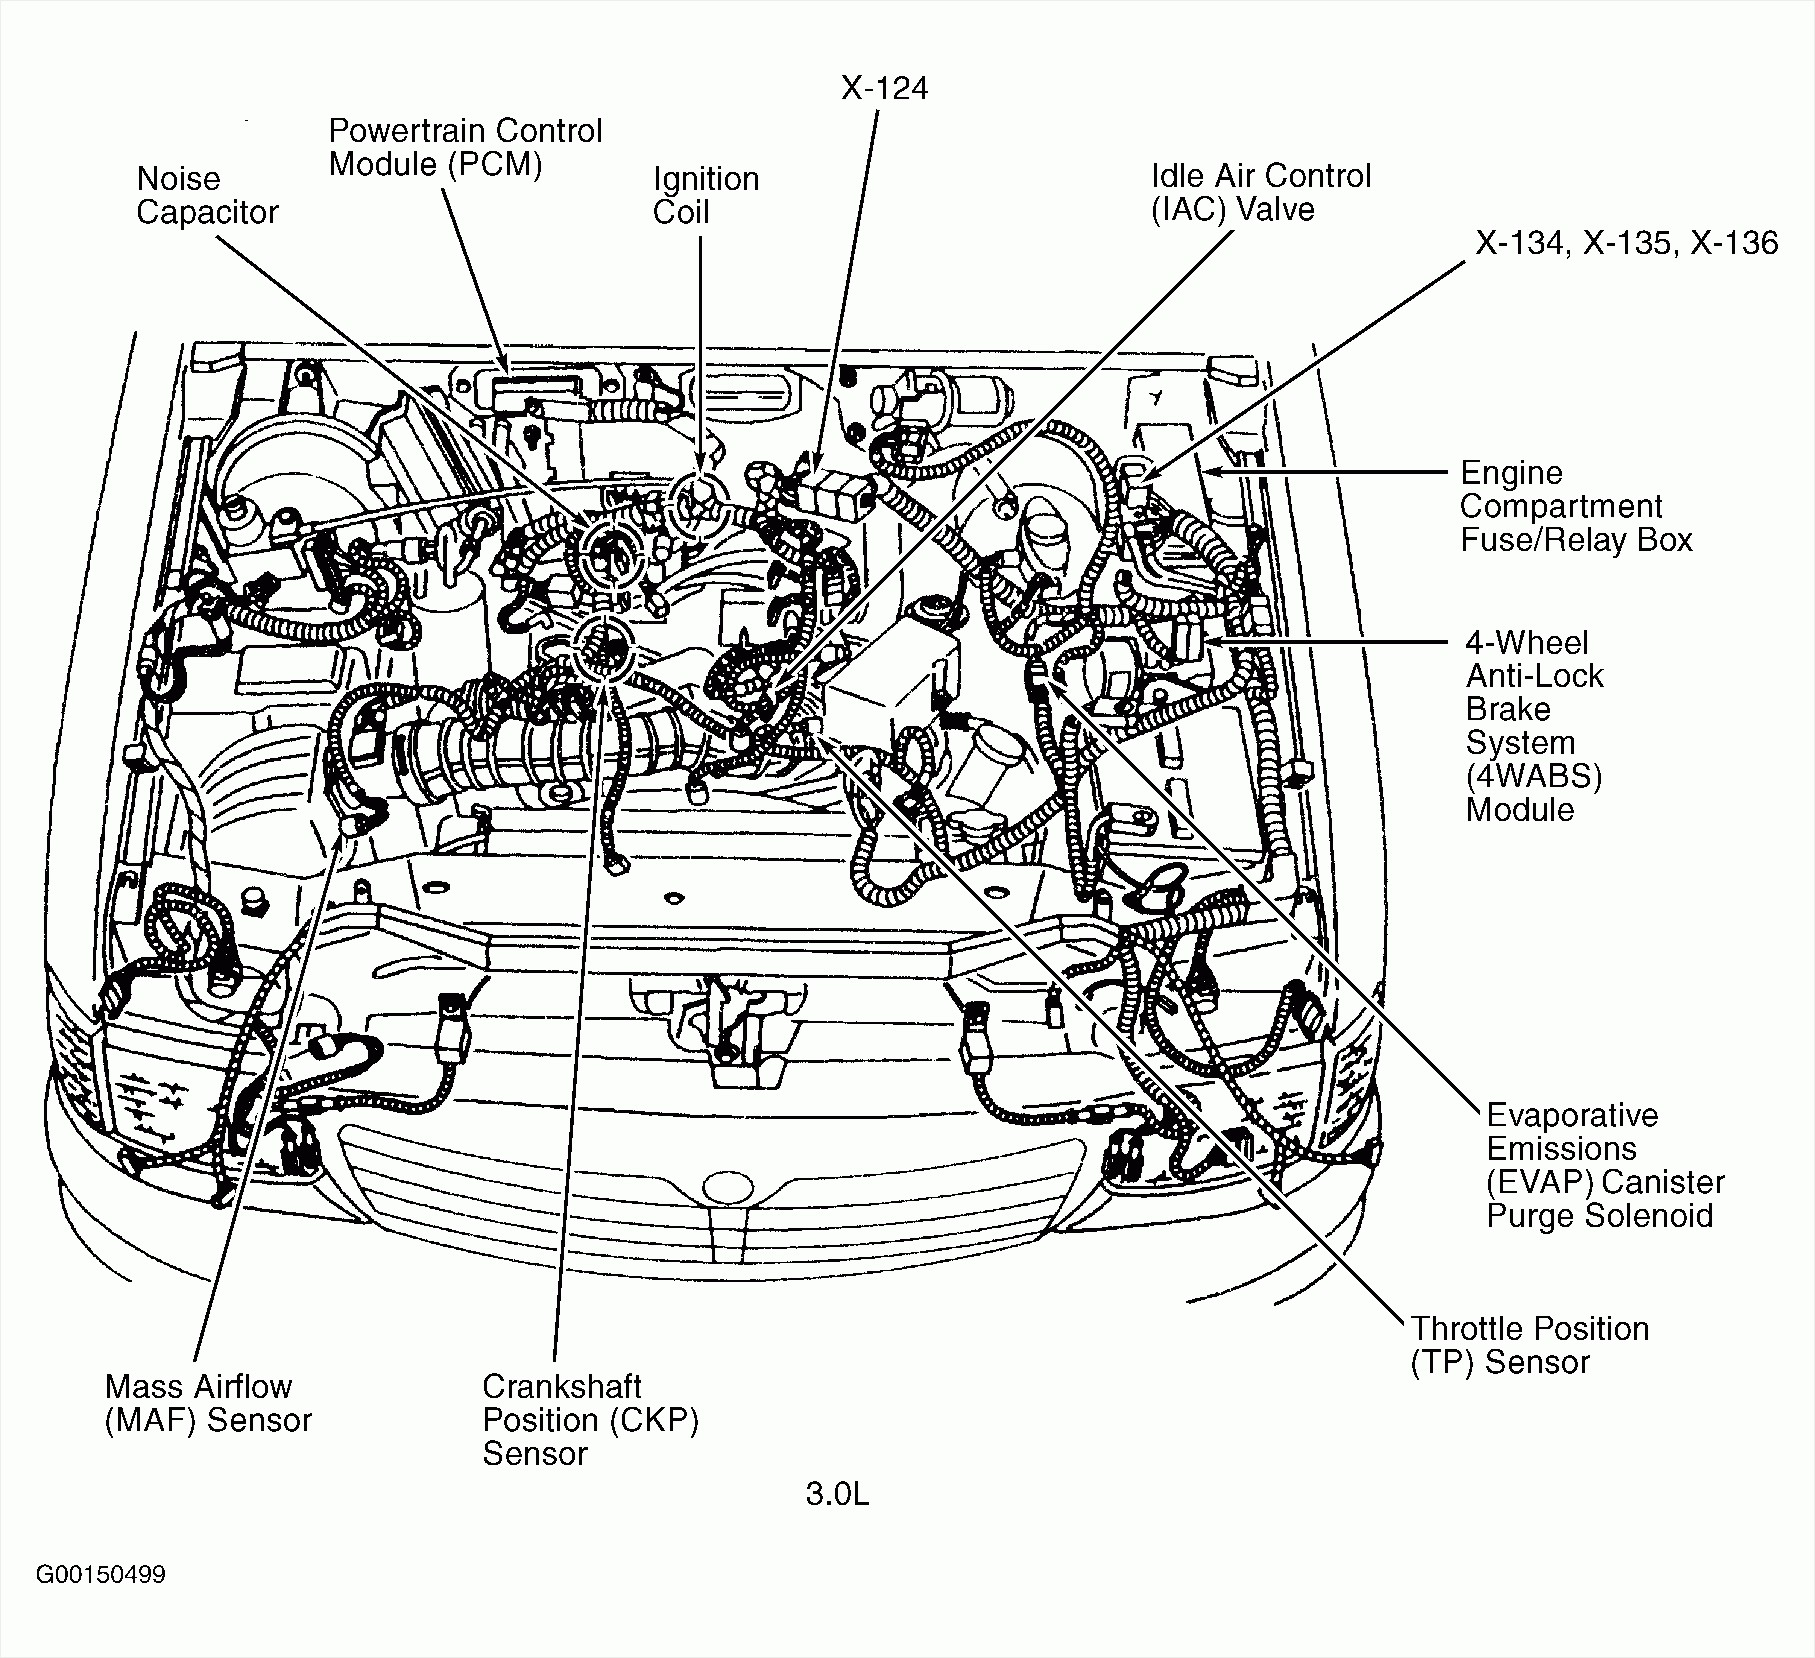 mazda engine diagrams wiring diagram data rh 12 16 mpunkt wolfsburg de mazda 626 engine diagram mazda 323 engine diagram